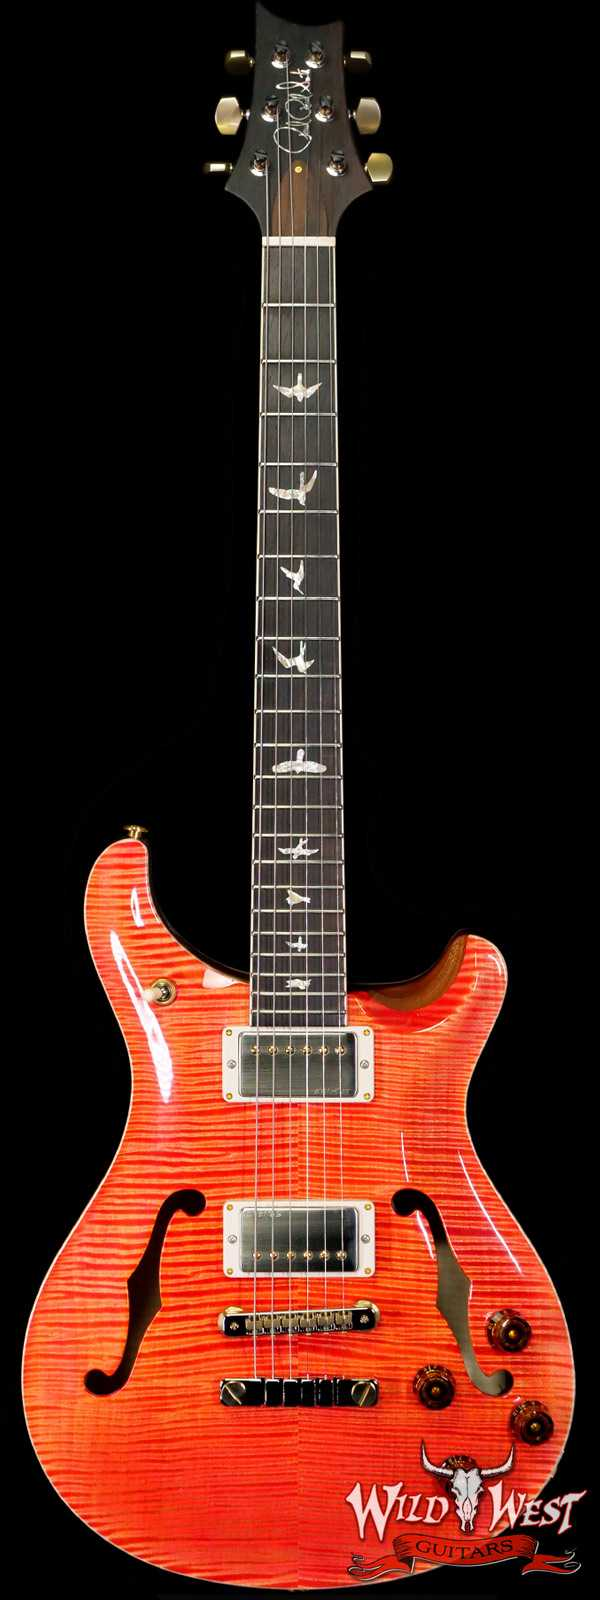 PRS Wild West Guitars 20th Anniversary Limited Run # 15 of 40 Wood Library Artist Package McCarty 594 Hollowbody II Salmon(Private Stock Color)